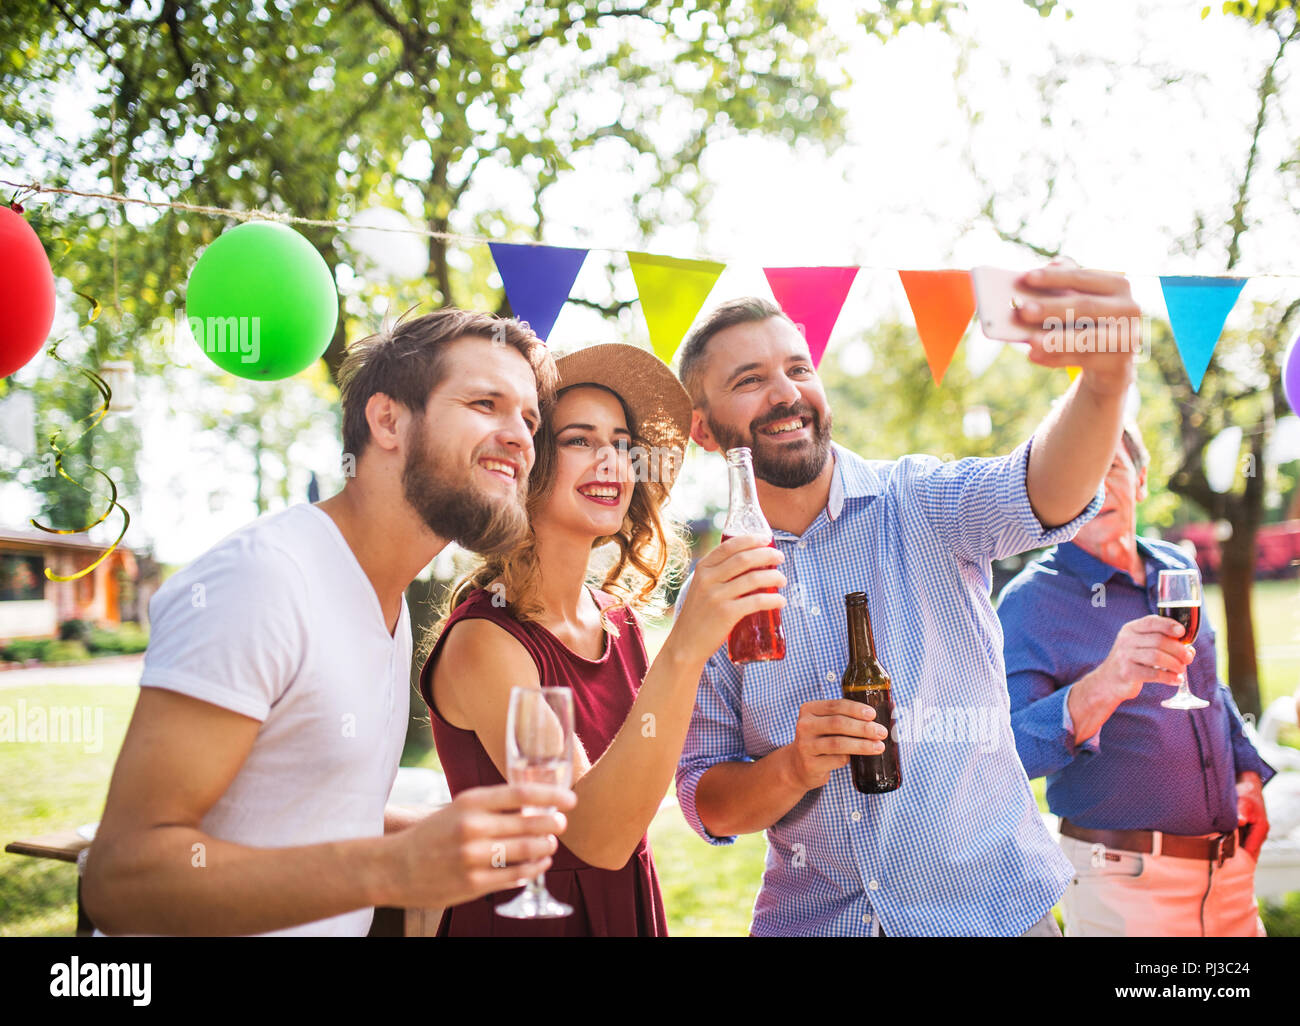 Young people taking selfie at a party outside in the backyard. - Stock Image